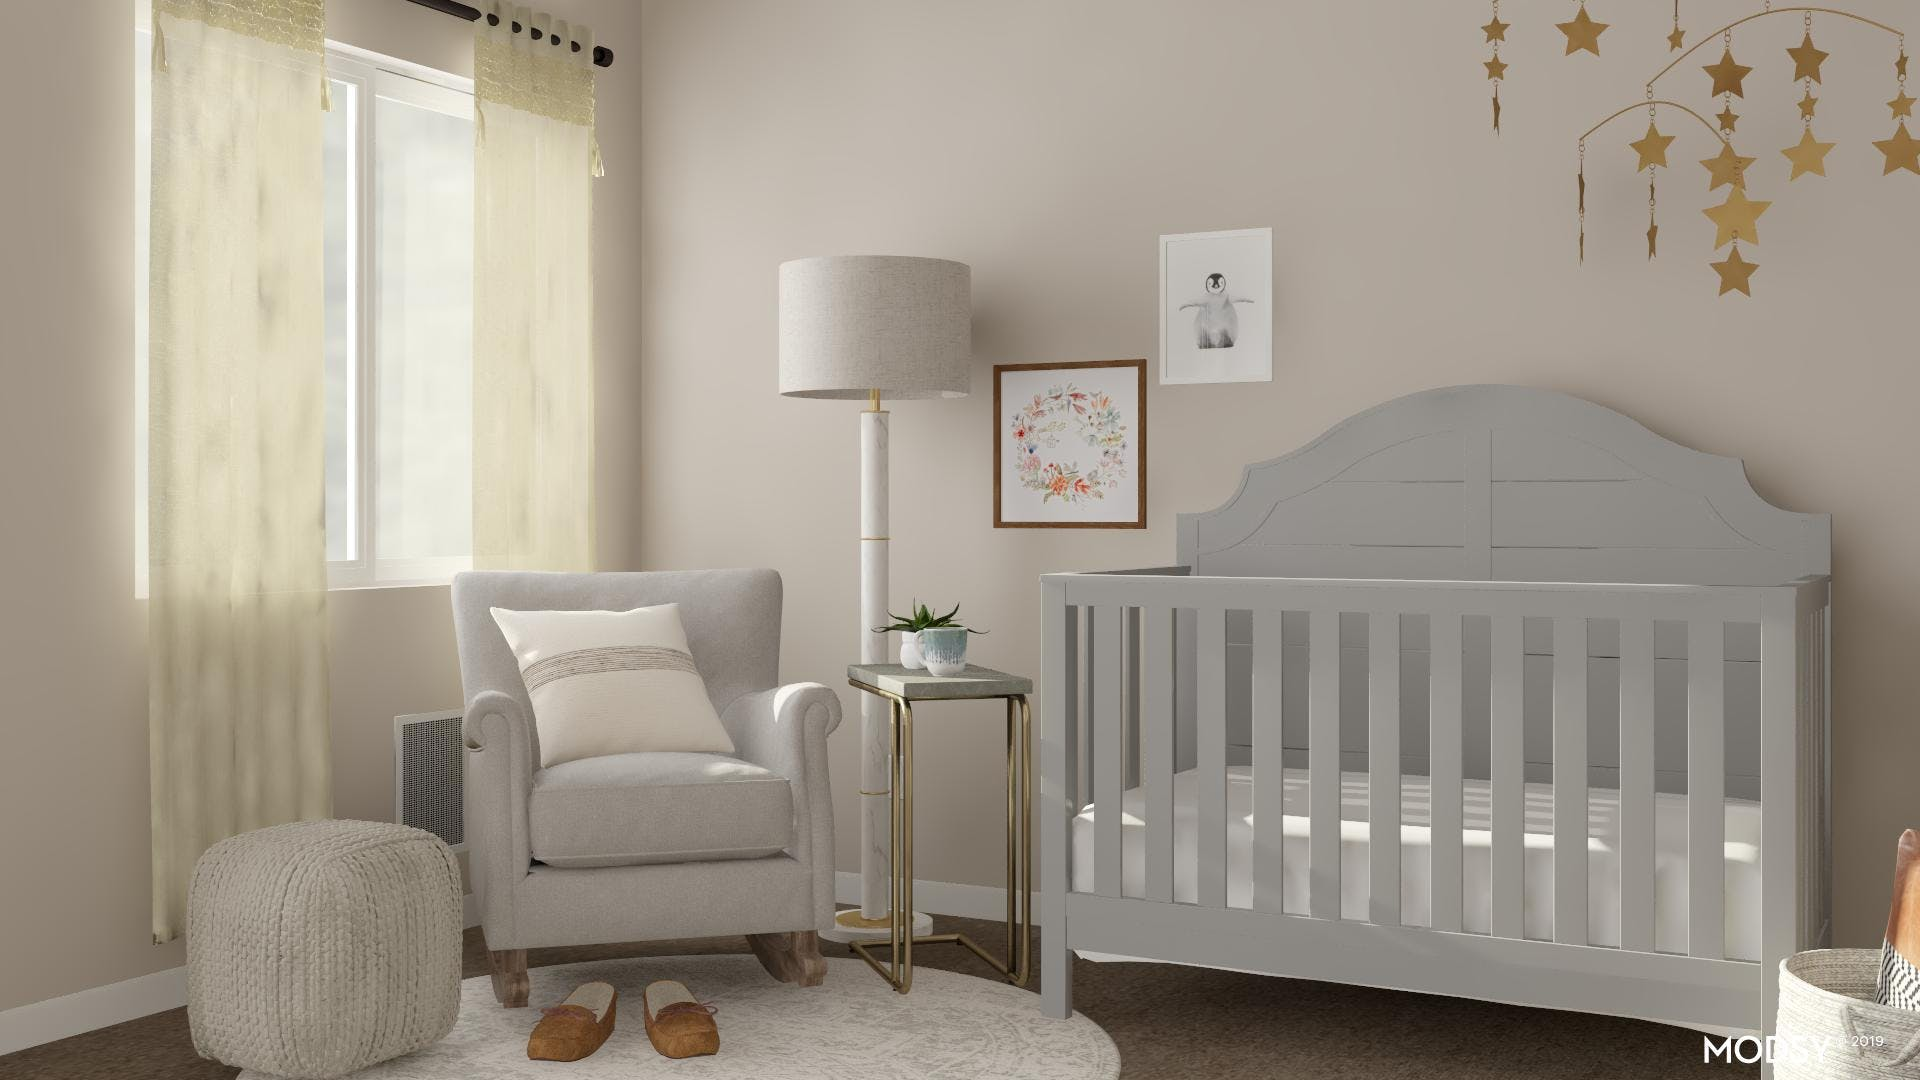 Comfortable Space In The Nursery